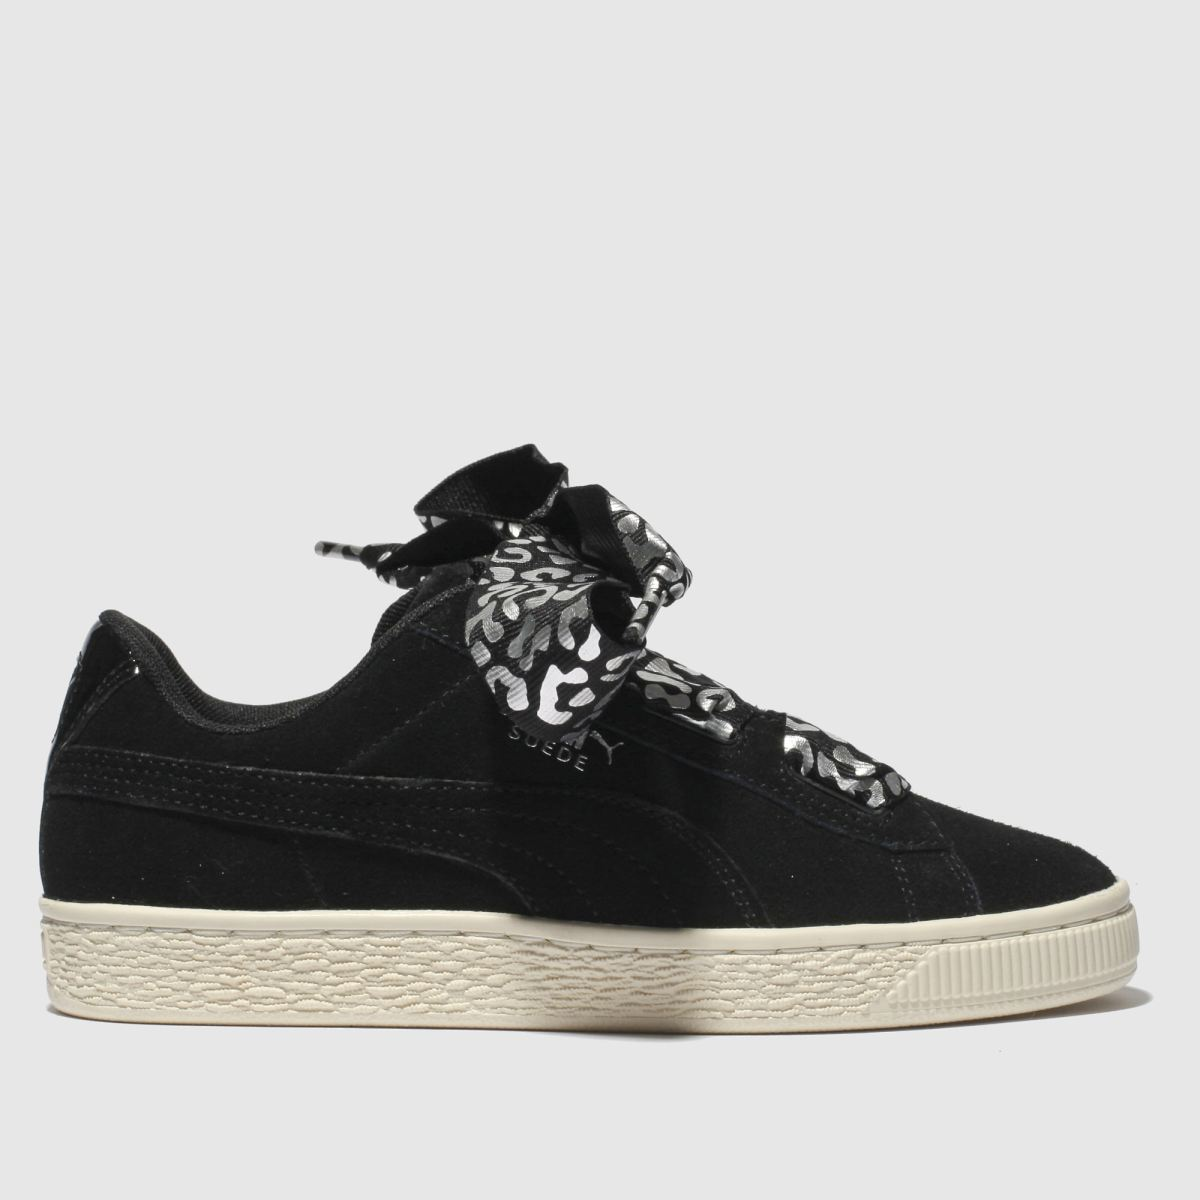 Puma Black & Silver Suede Heart Athluxe Trainers Youth